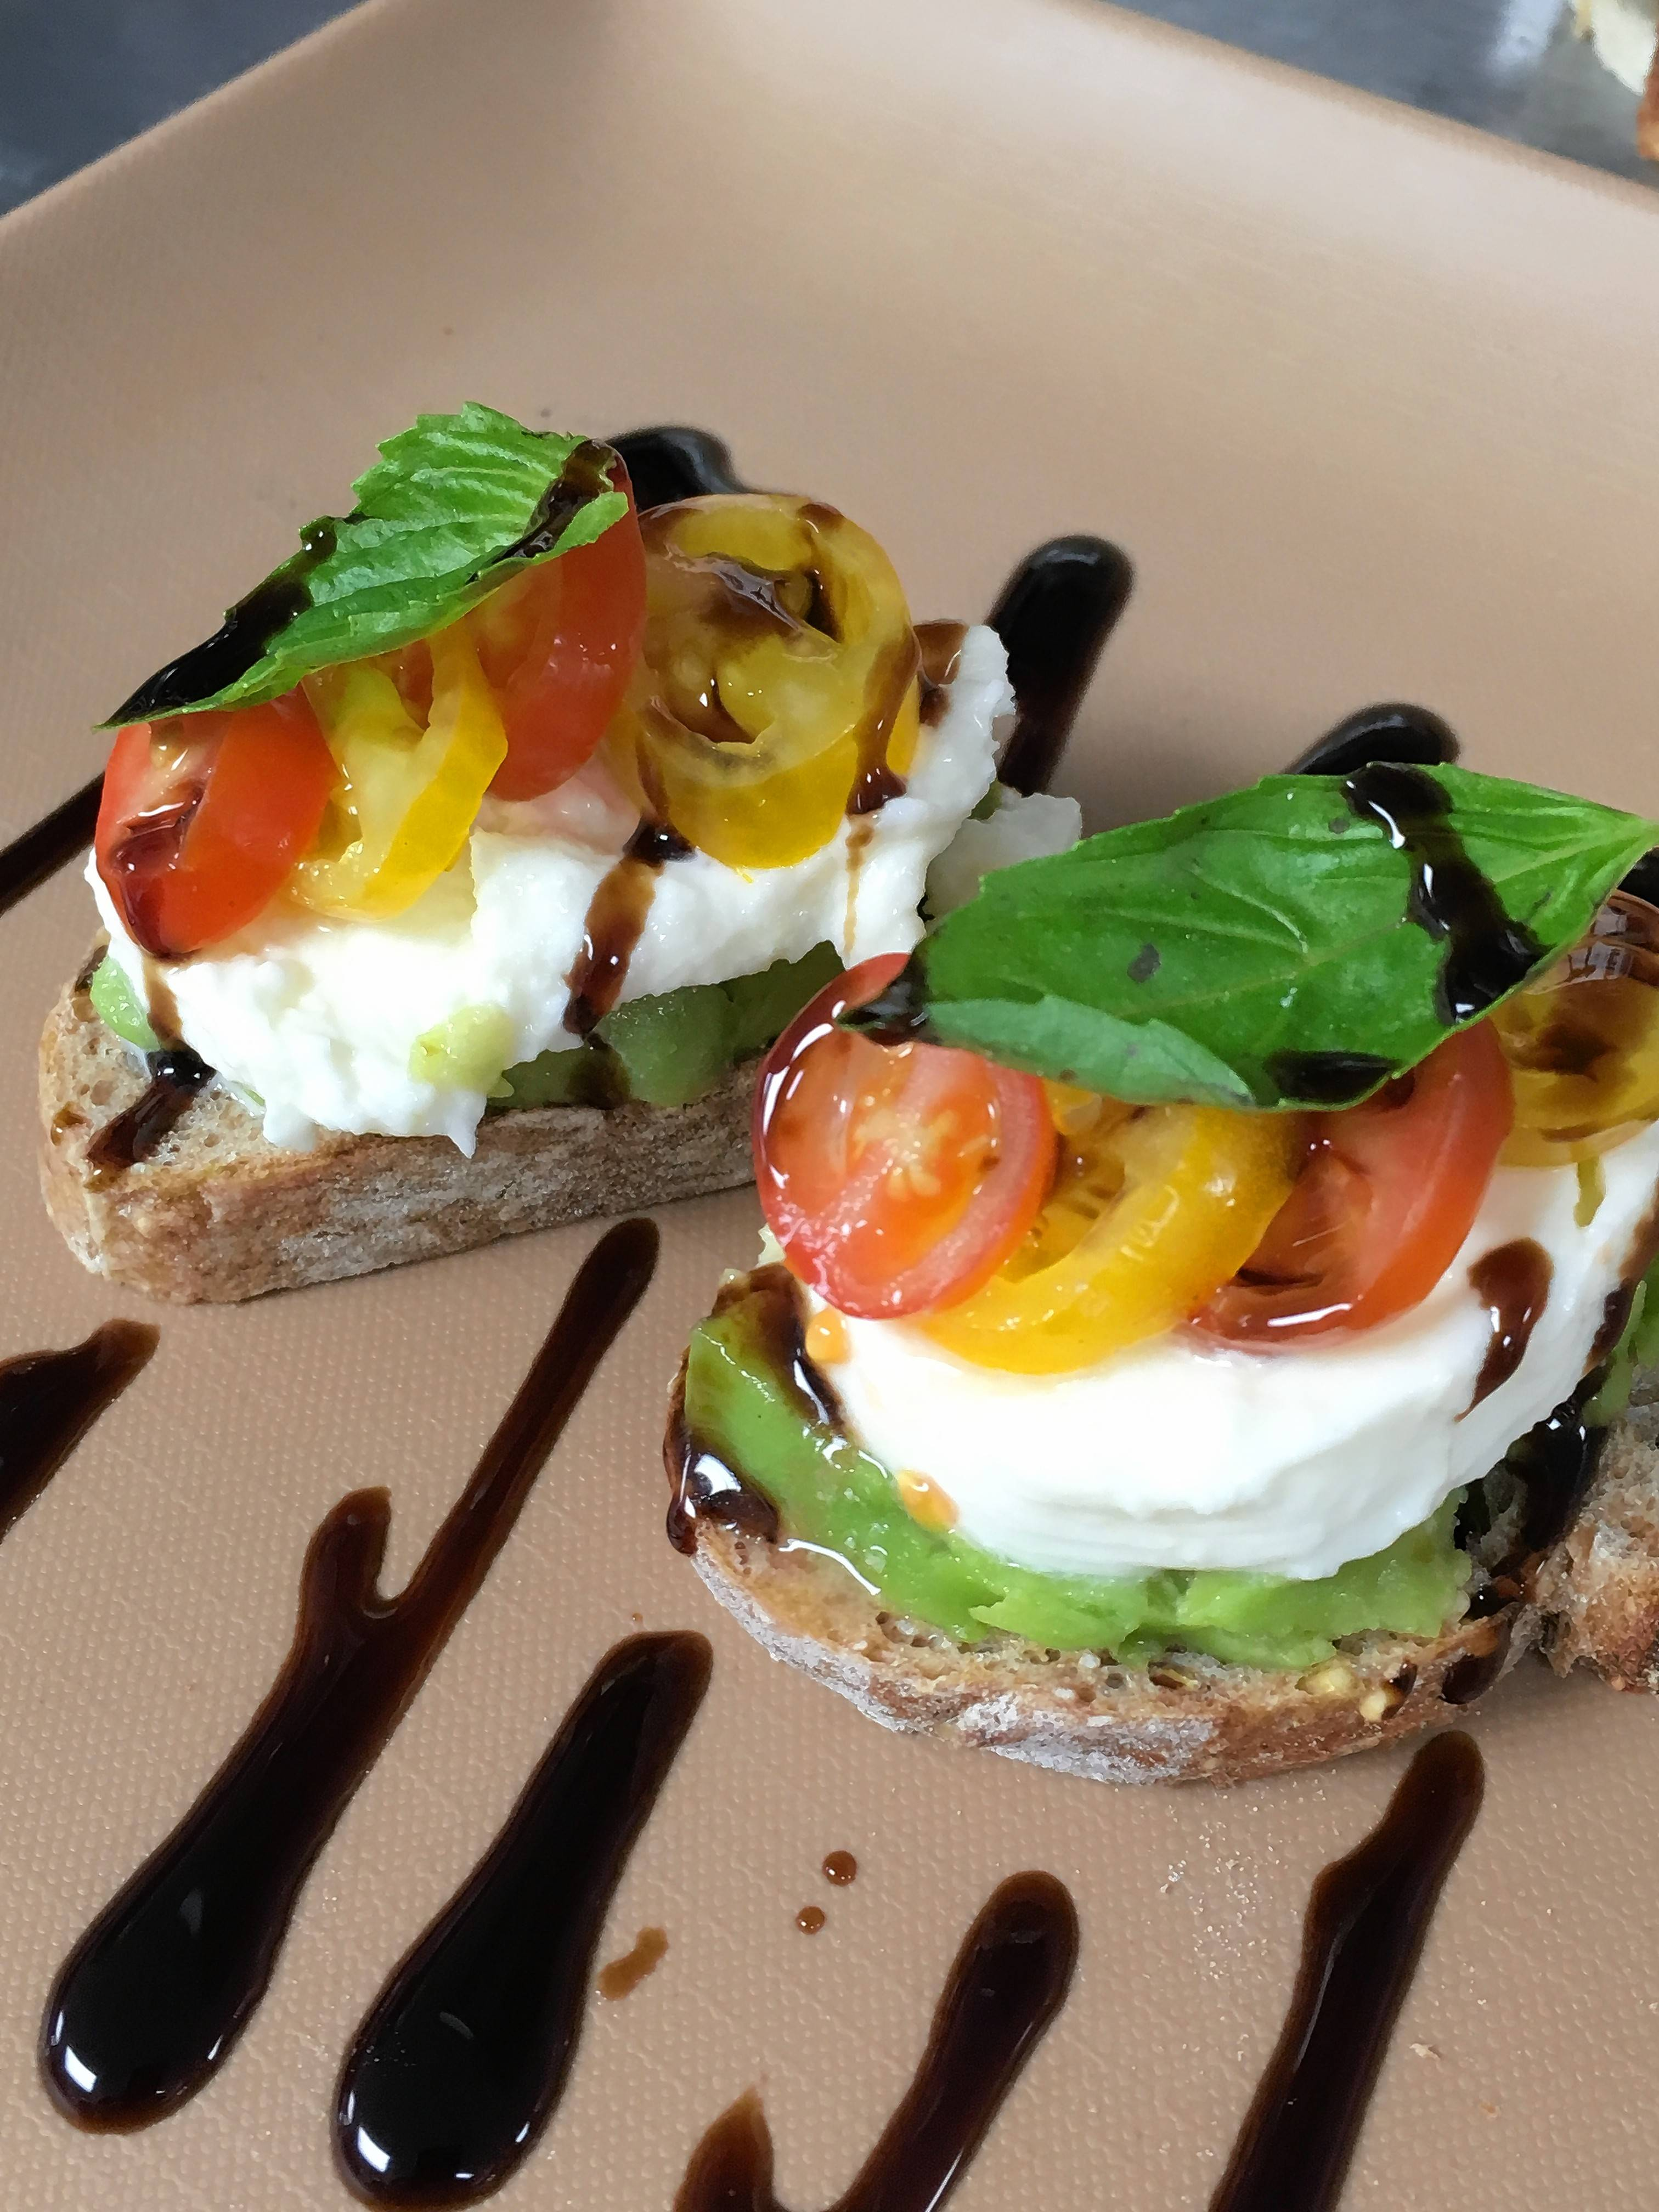 Avocado caprese bruschetta is one of the small plates being served during Big Bad Beer Eve Wednesday, Feb. 14, at Beerhead Bar & Eatery in Vernon Hills and The Beer Market in Bolingbrook.